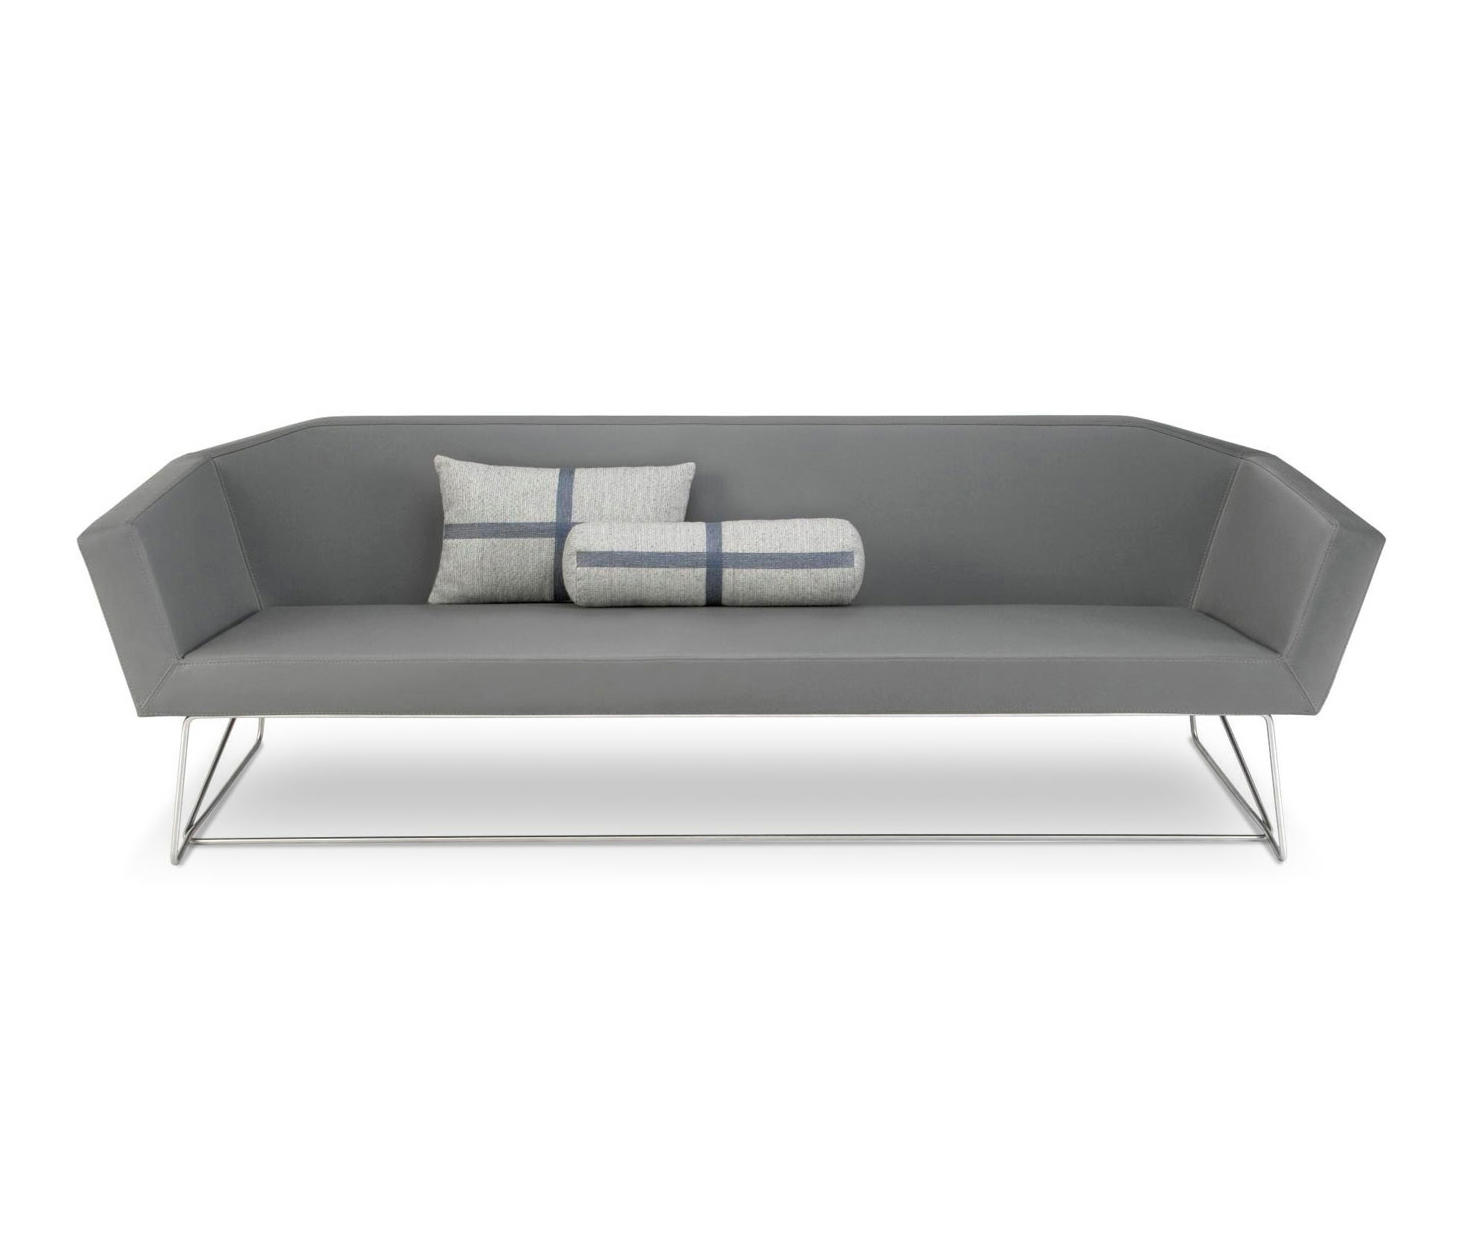 SWEPT SOFA - Sofas from Blu Dot | Architonic